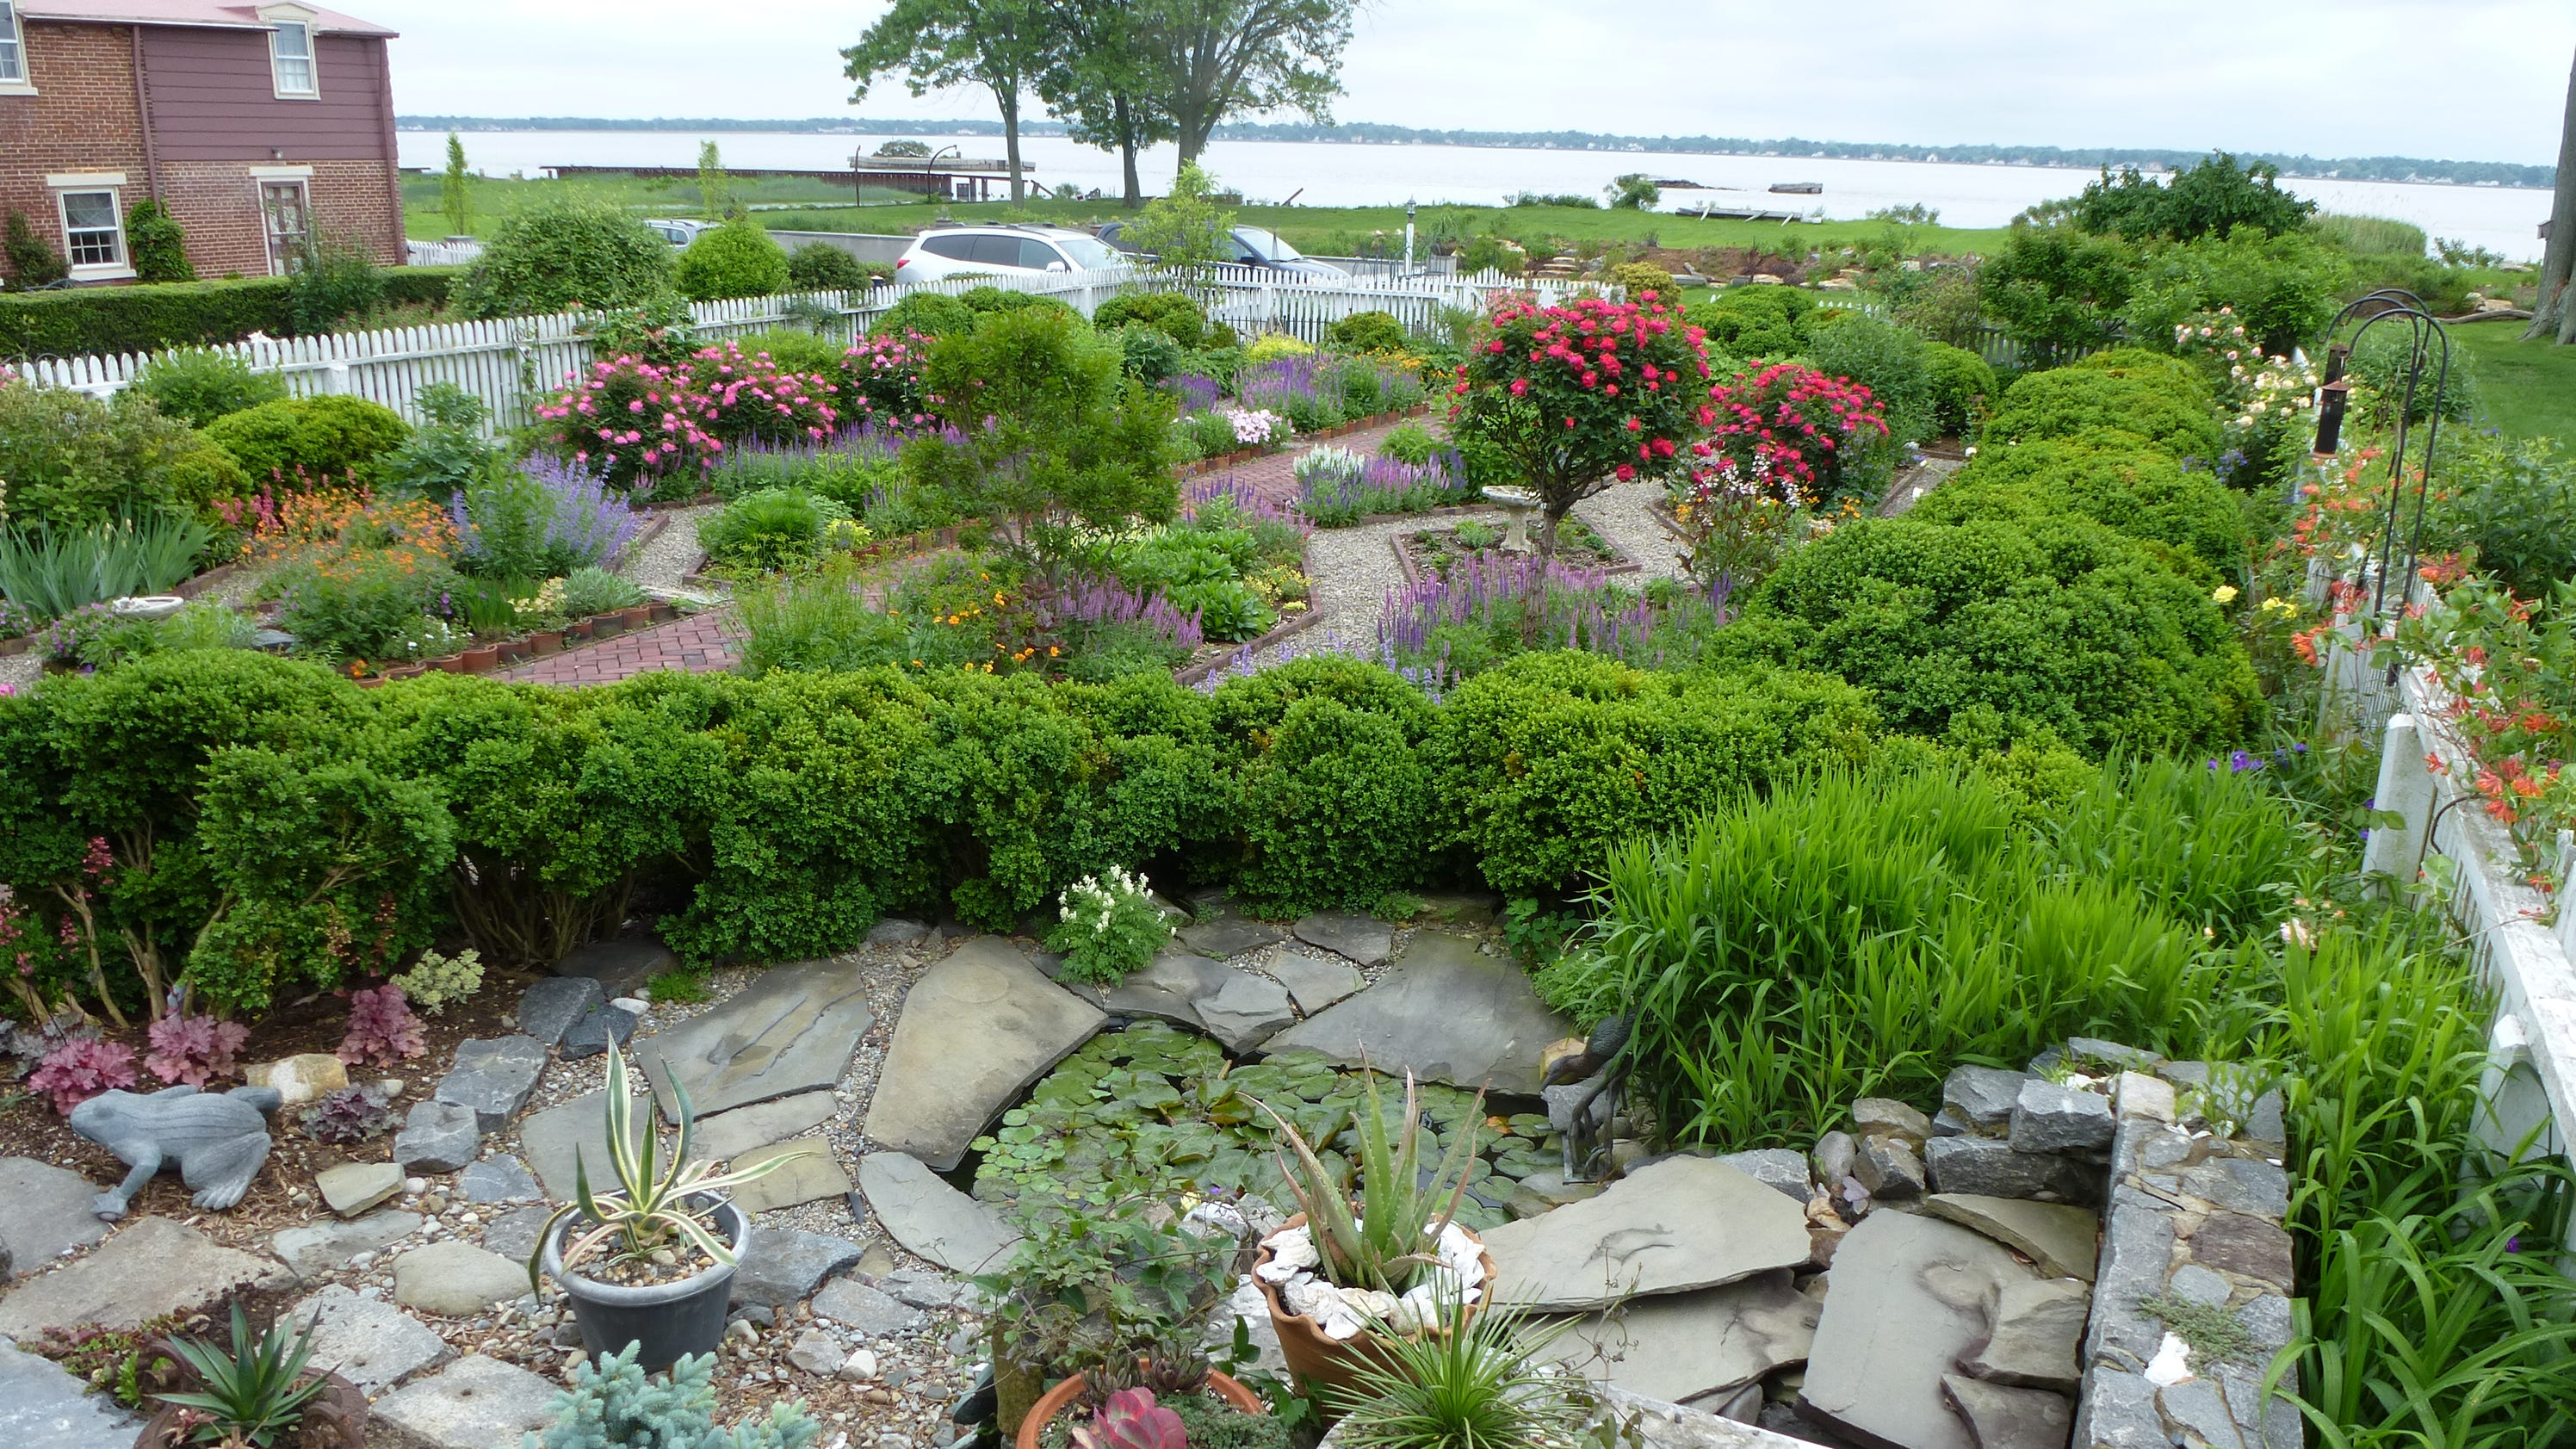 6 things to do in your garden now for Home landscape design suite 8 0 link